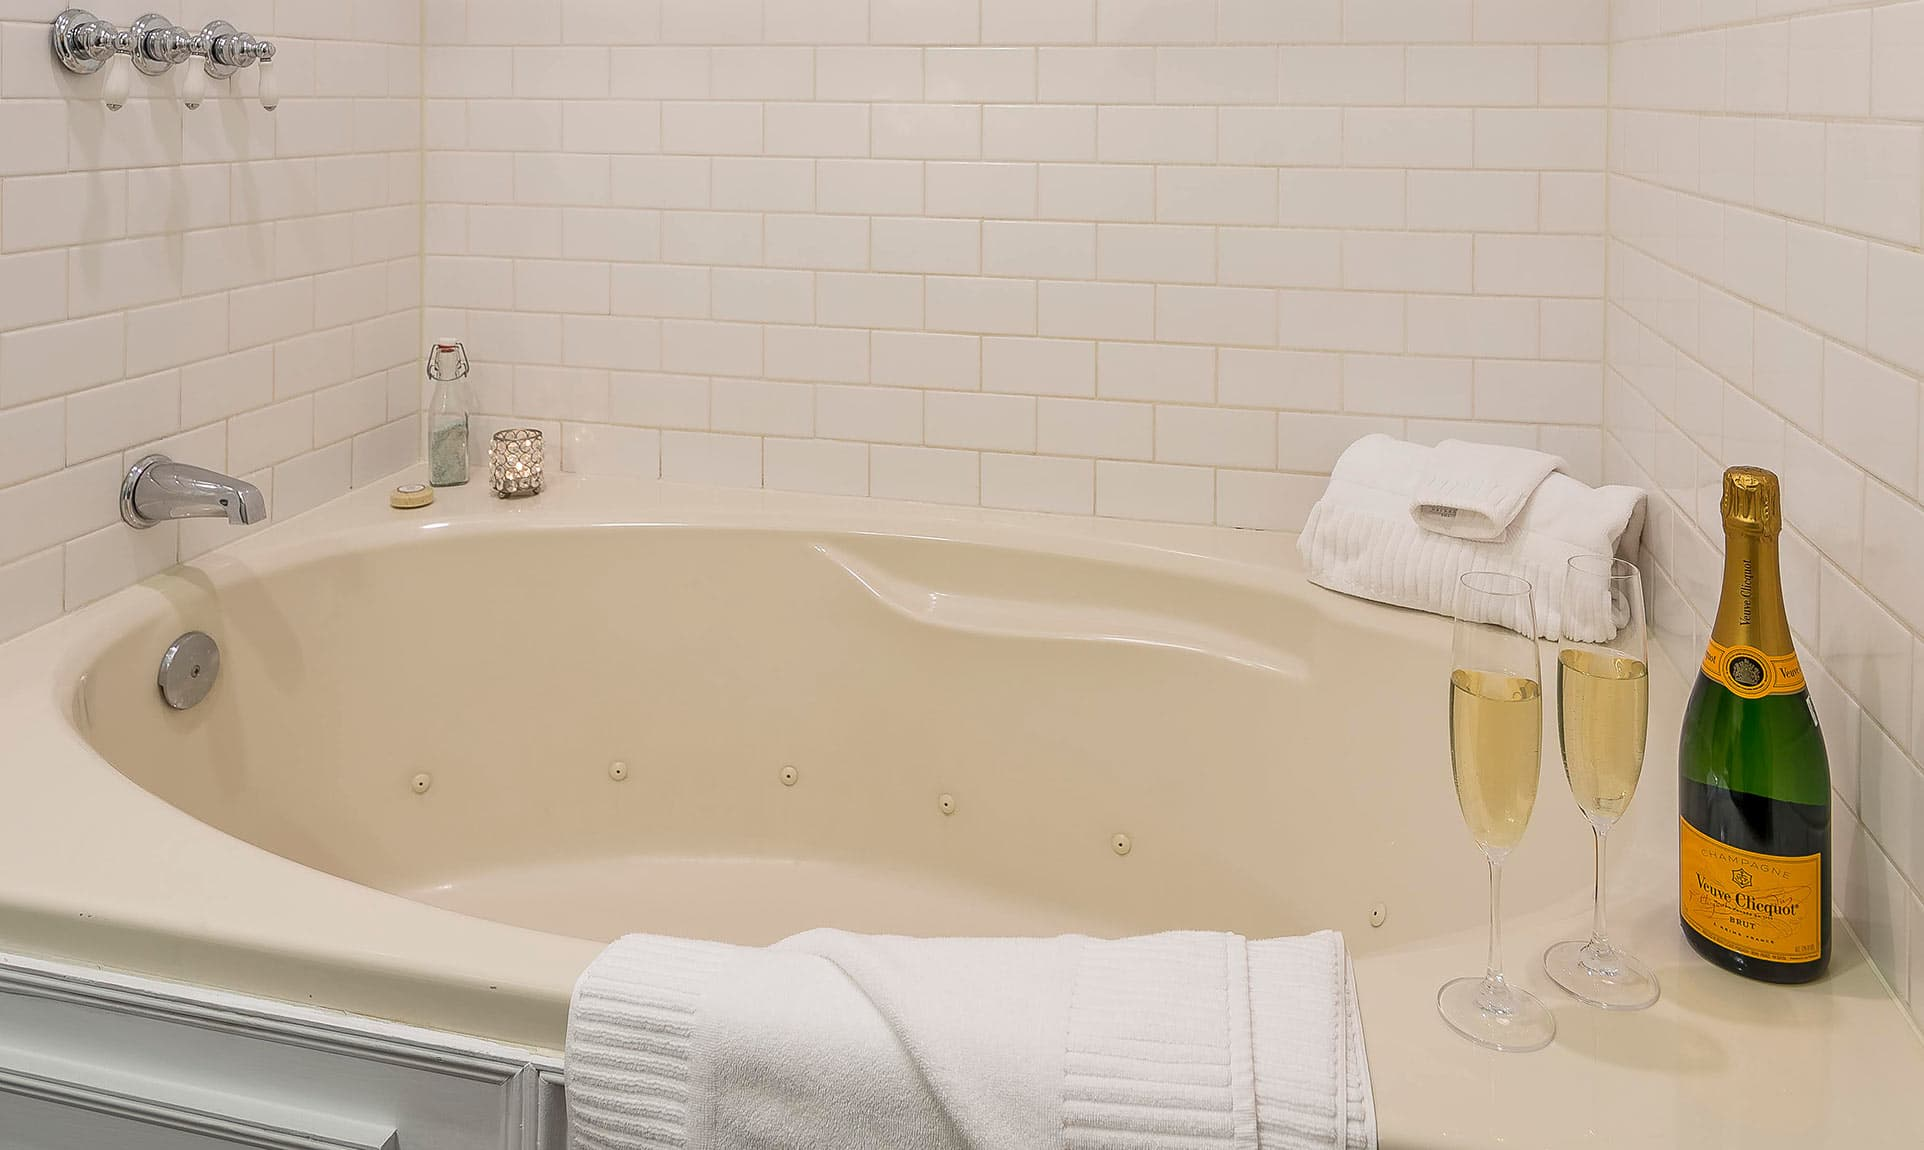 Jetted Tub with Champagne in the Cottage Suite at our Coastal Maine B&B